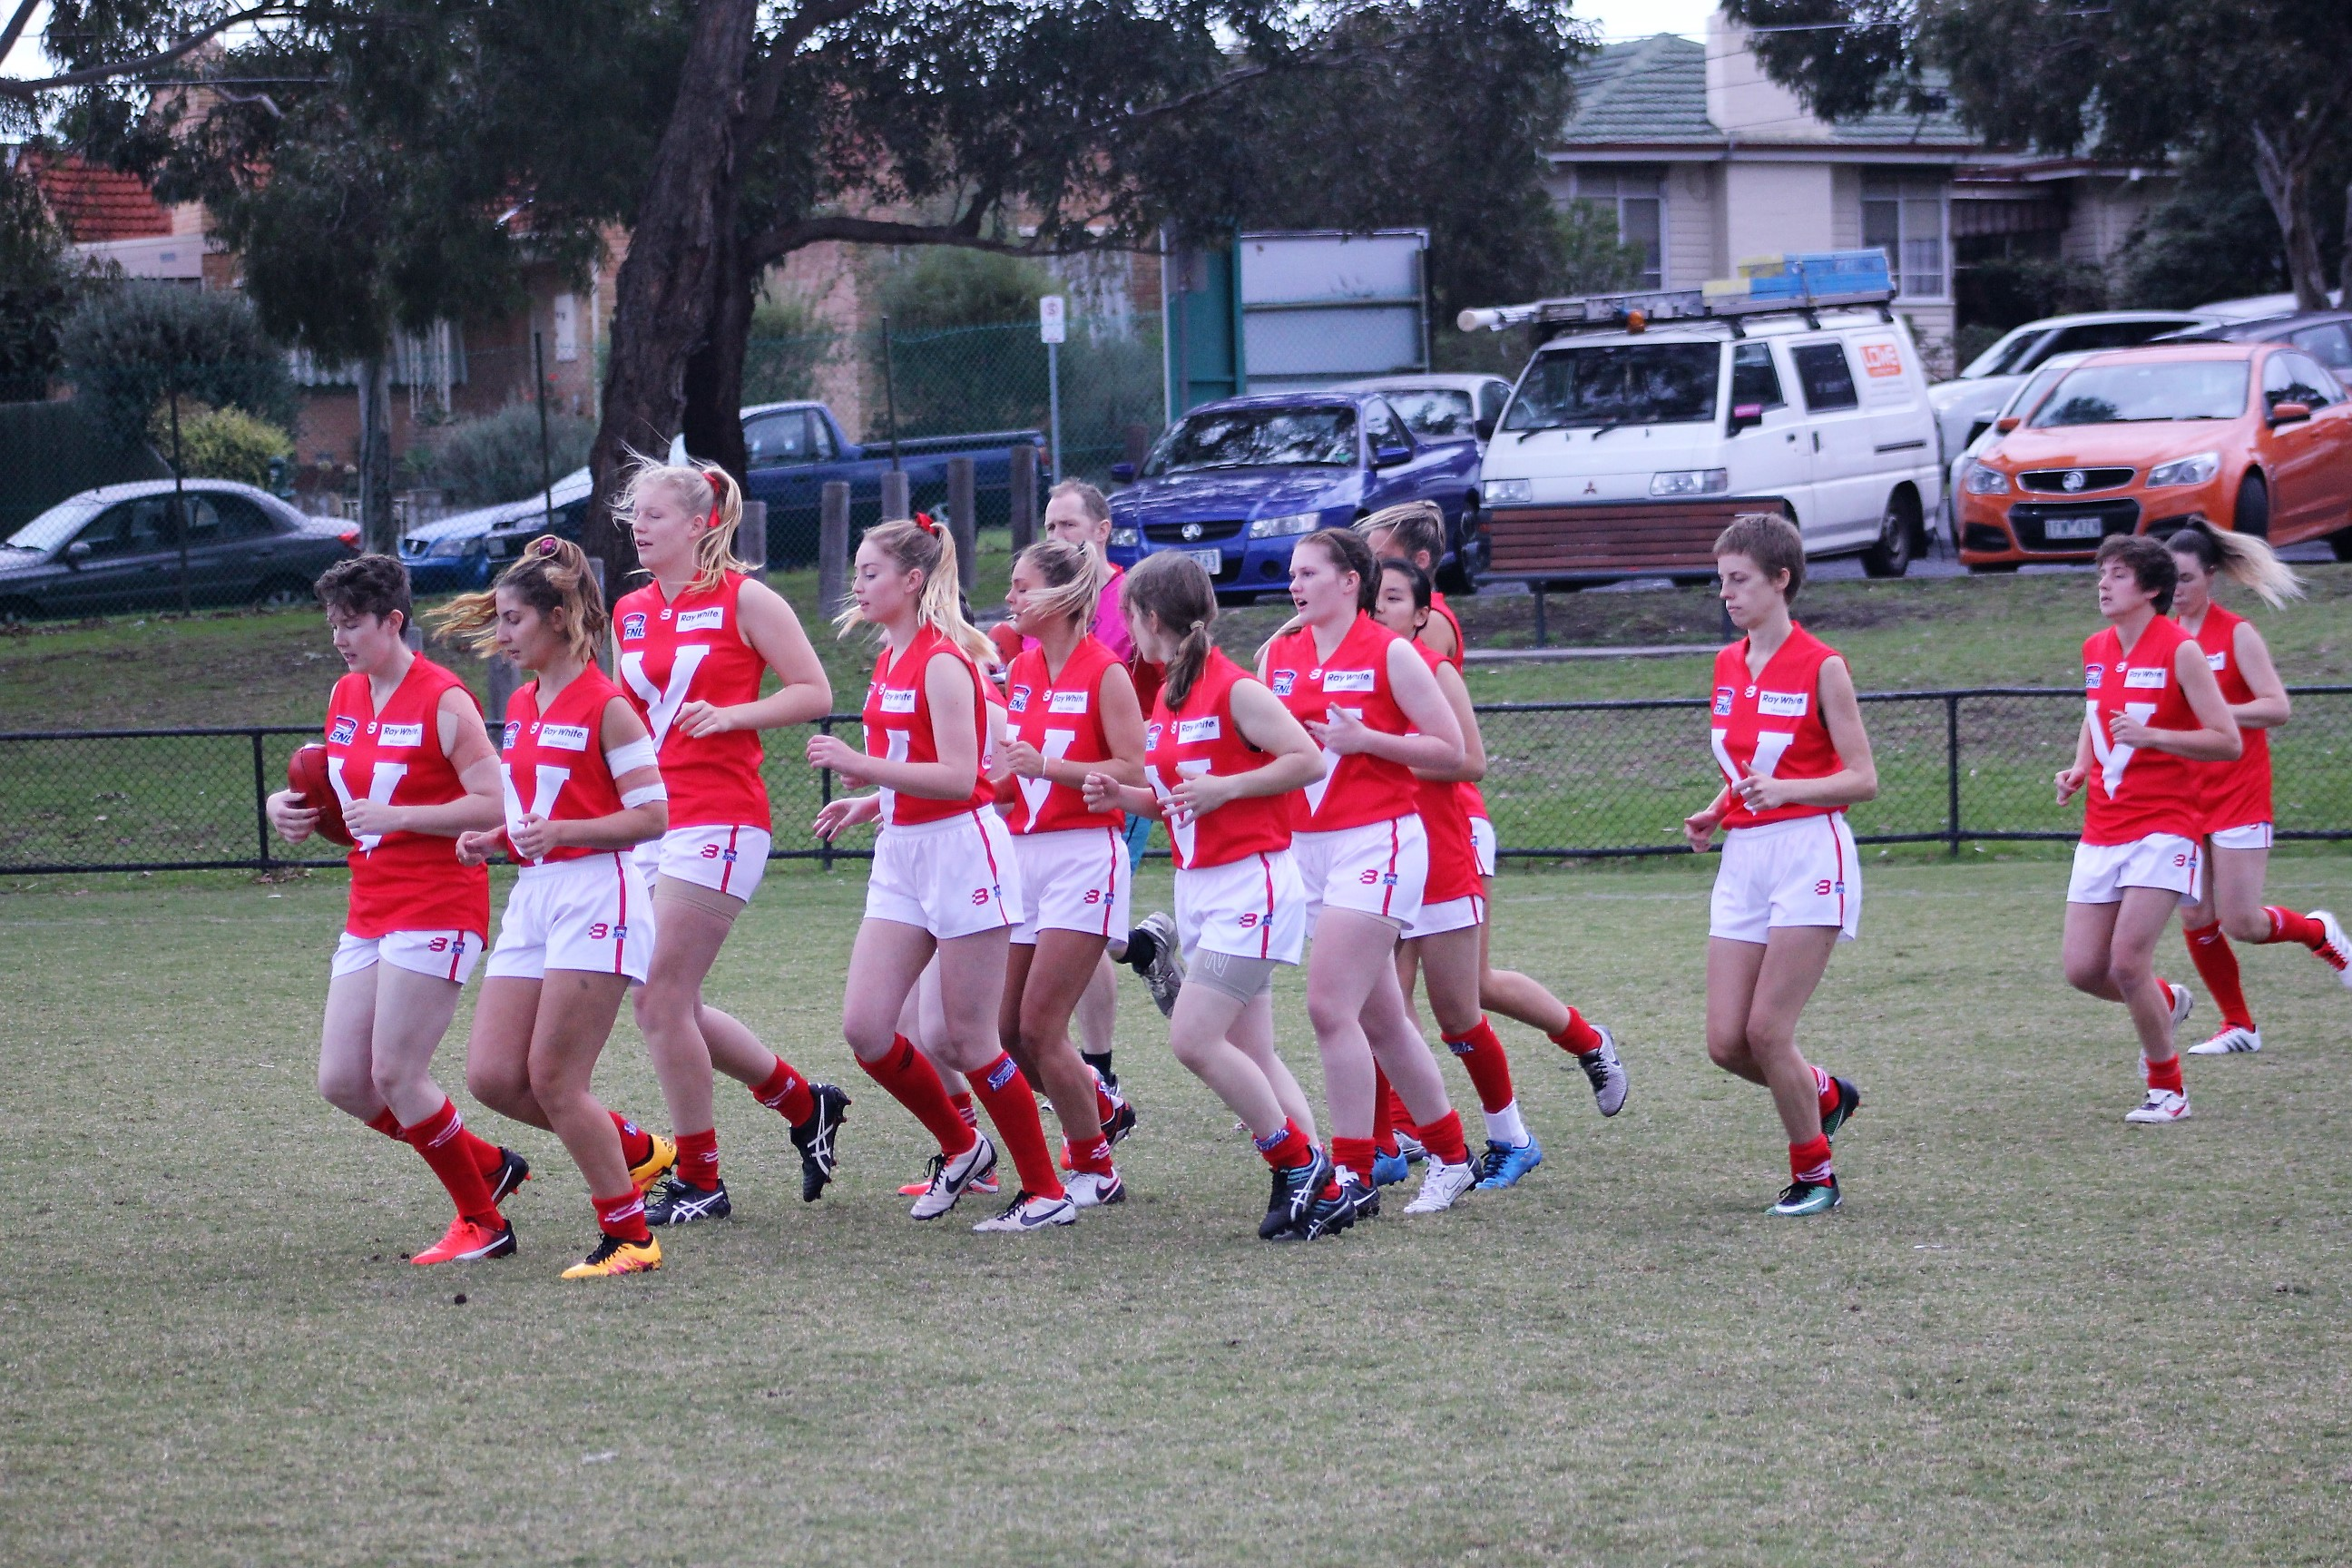 Fri 14th July Snr Women v. Edithdale-Aspendale – 6.30pm